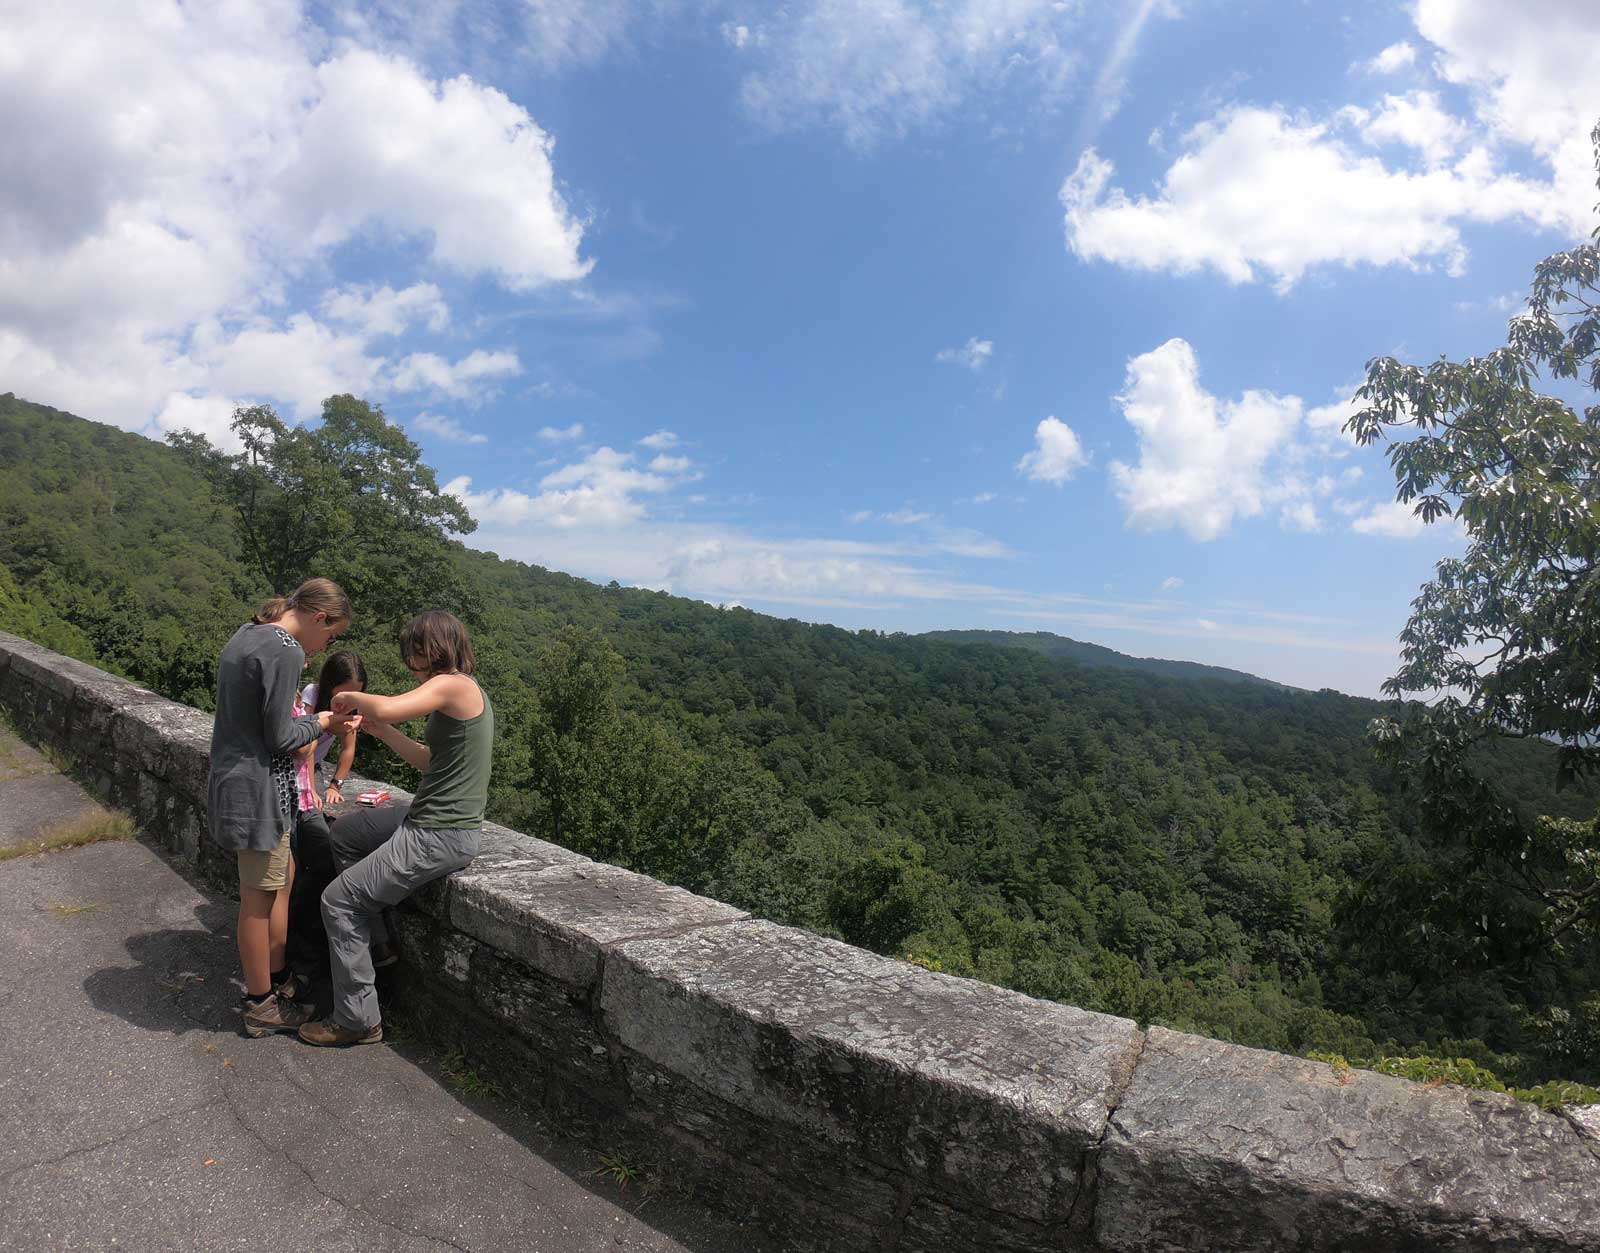 Photo of three girls at an overlook on the Blue Ridge Parkway near Black Mountain Campground.